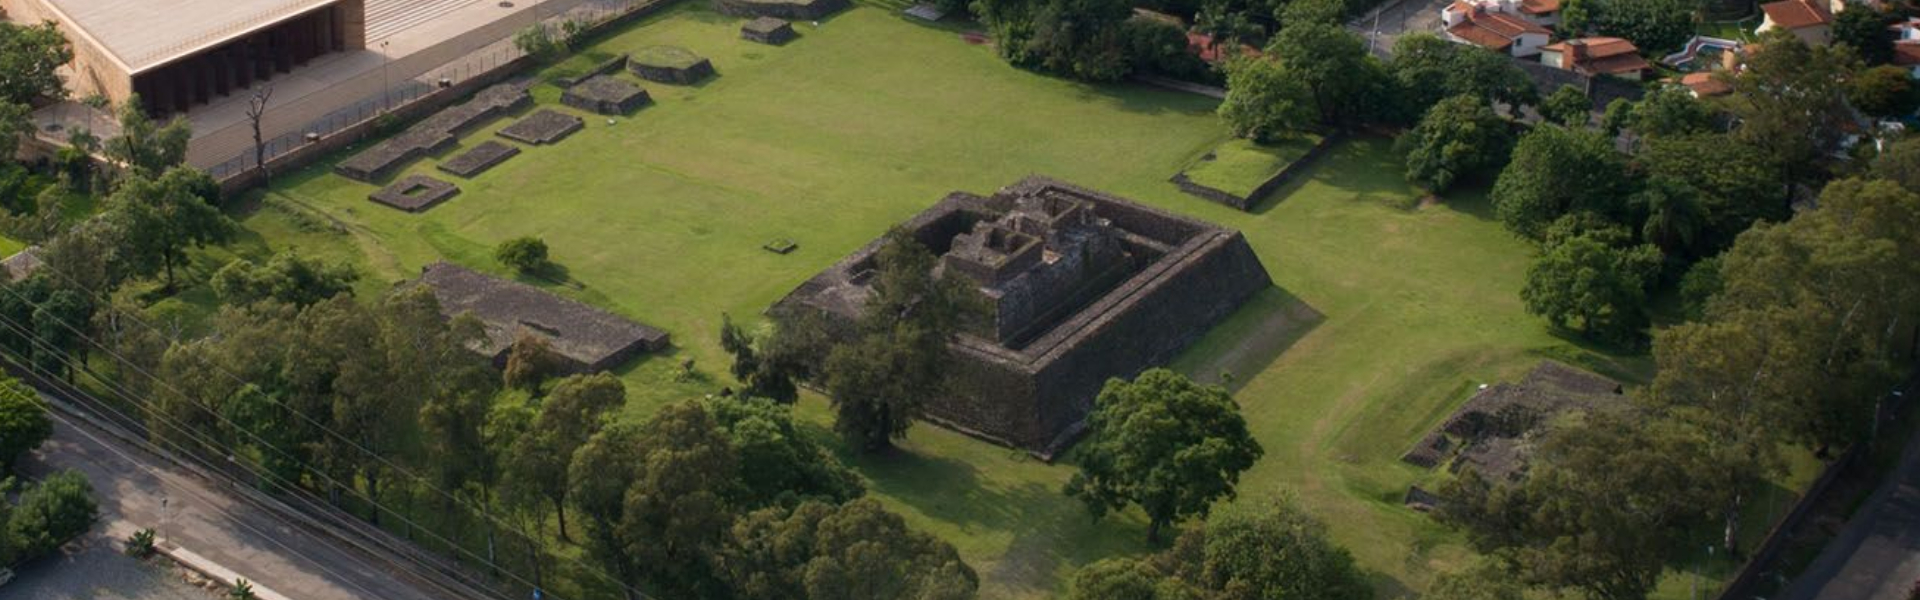 Terremoto revela antiguo templo escondido en pirámide mexicana-NATION